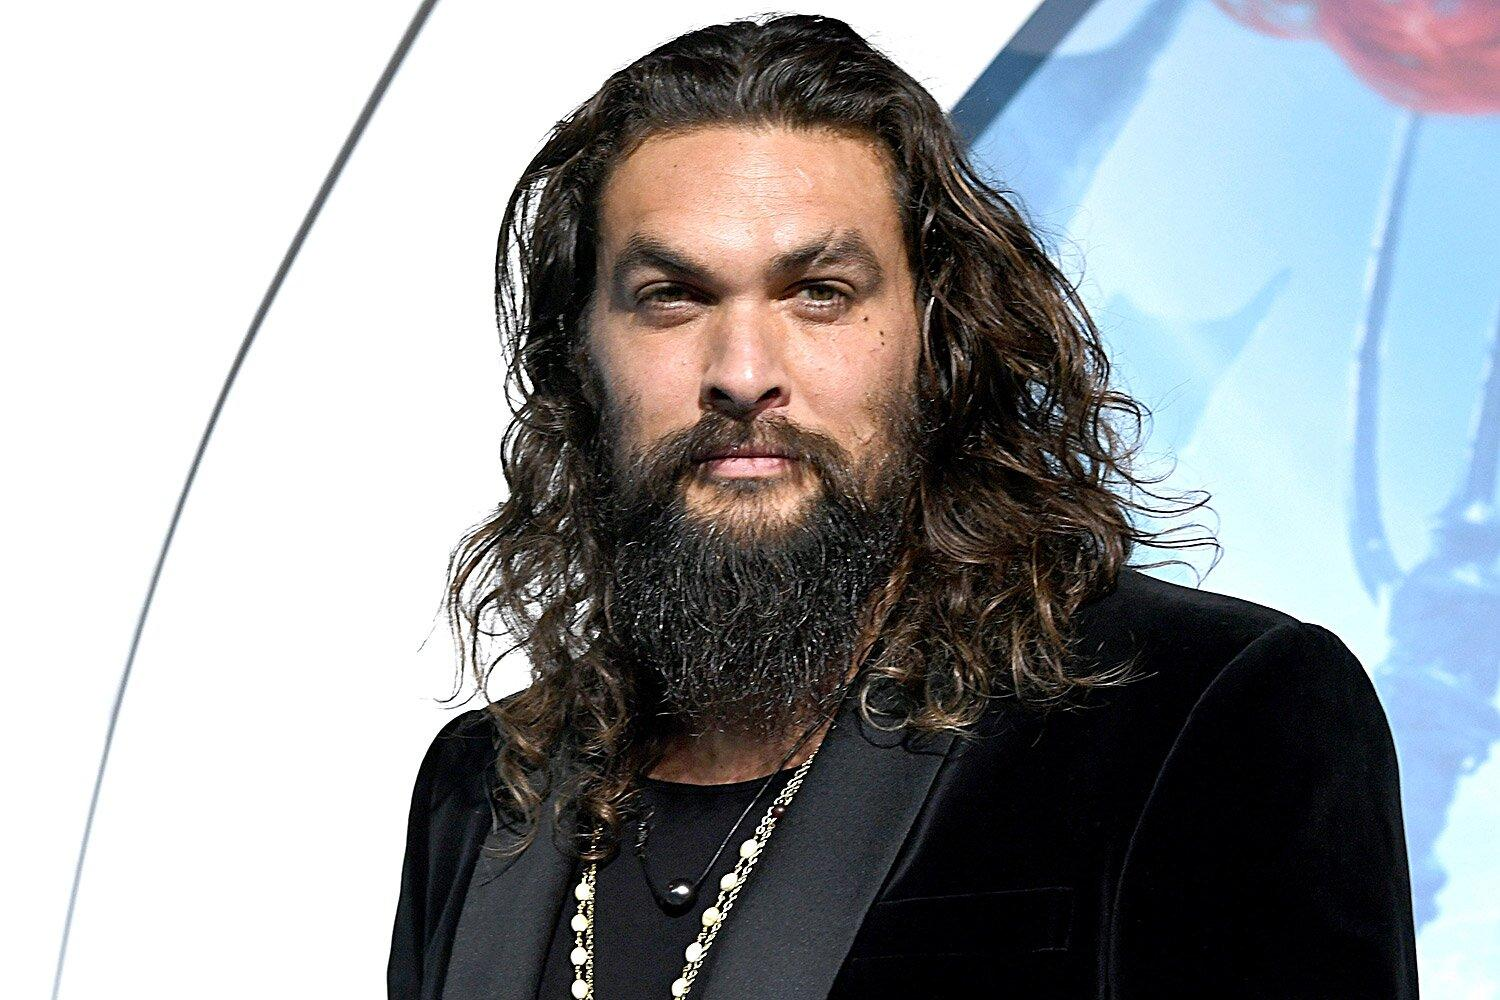 Jason Momoa Surprises Amazing Young Fan Struggling With Cancer With An Aquaman Trident